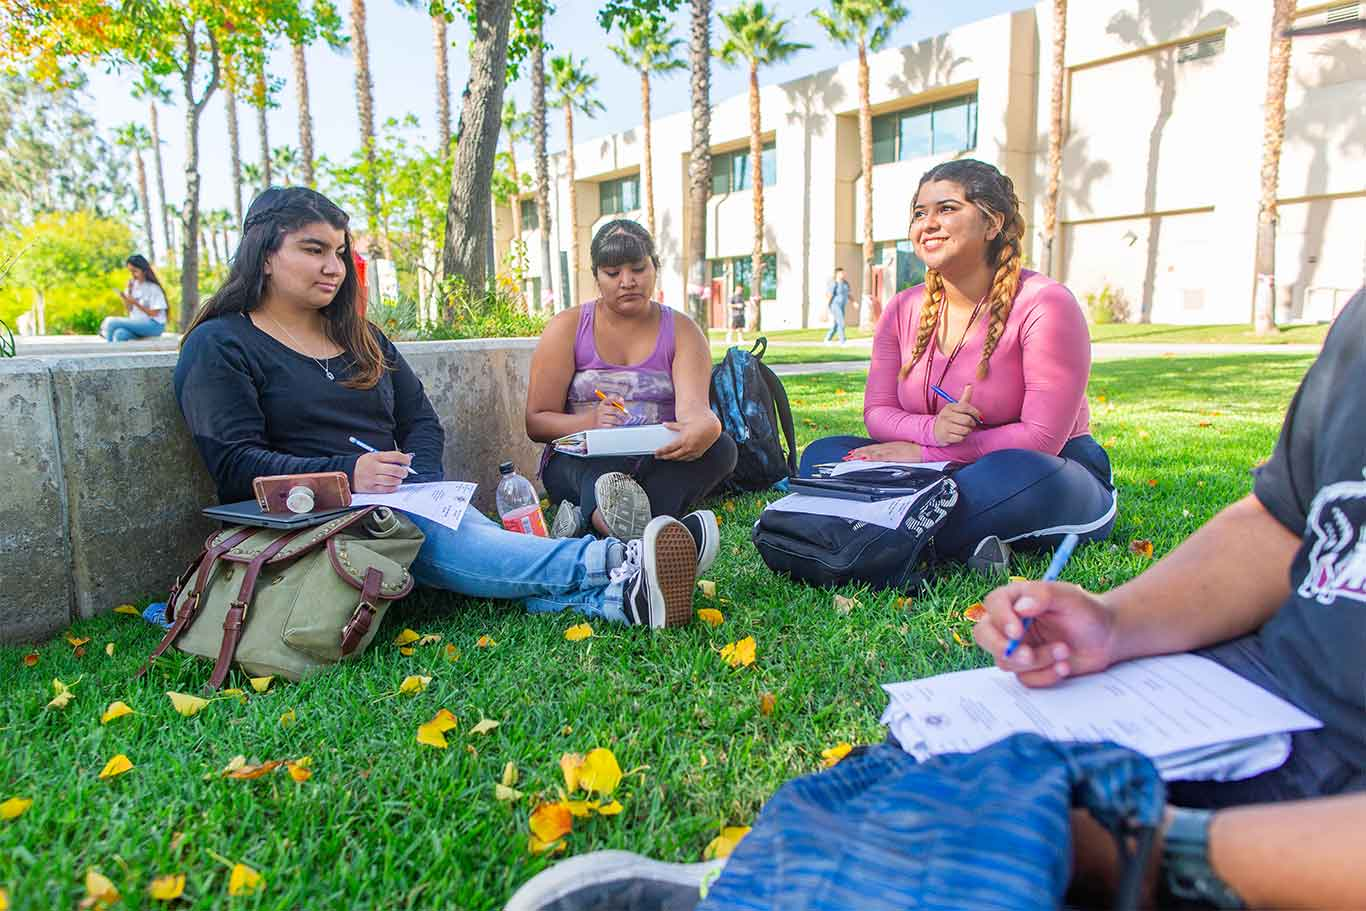 Students meeting and talking on the lawn of campus